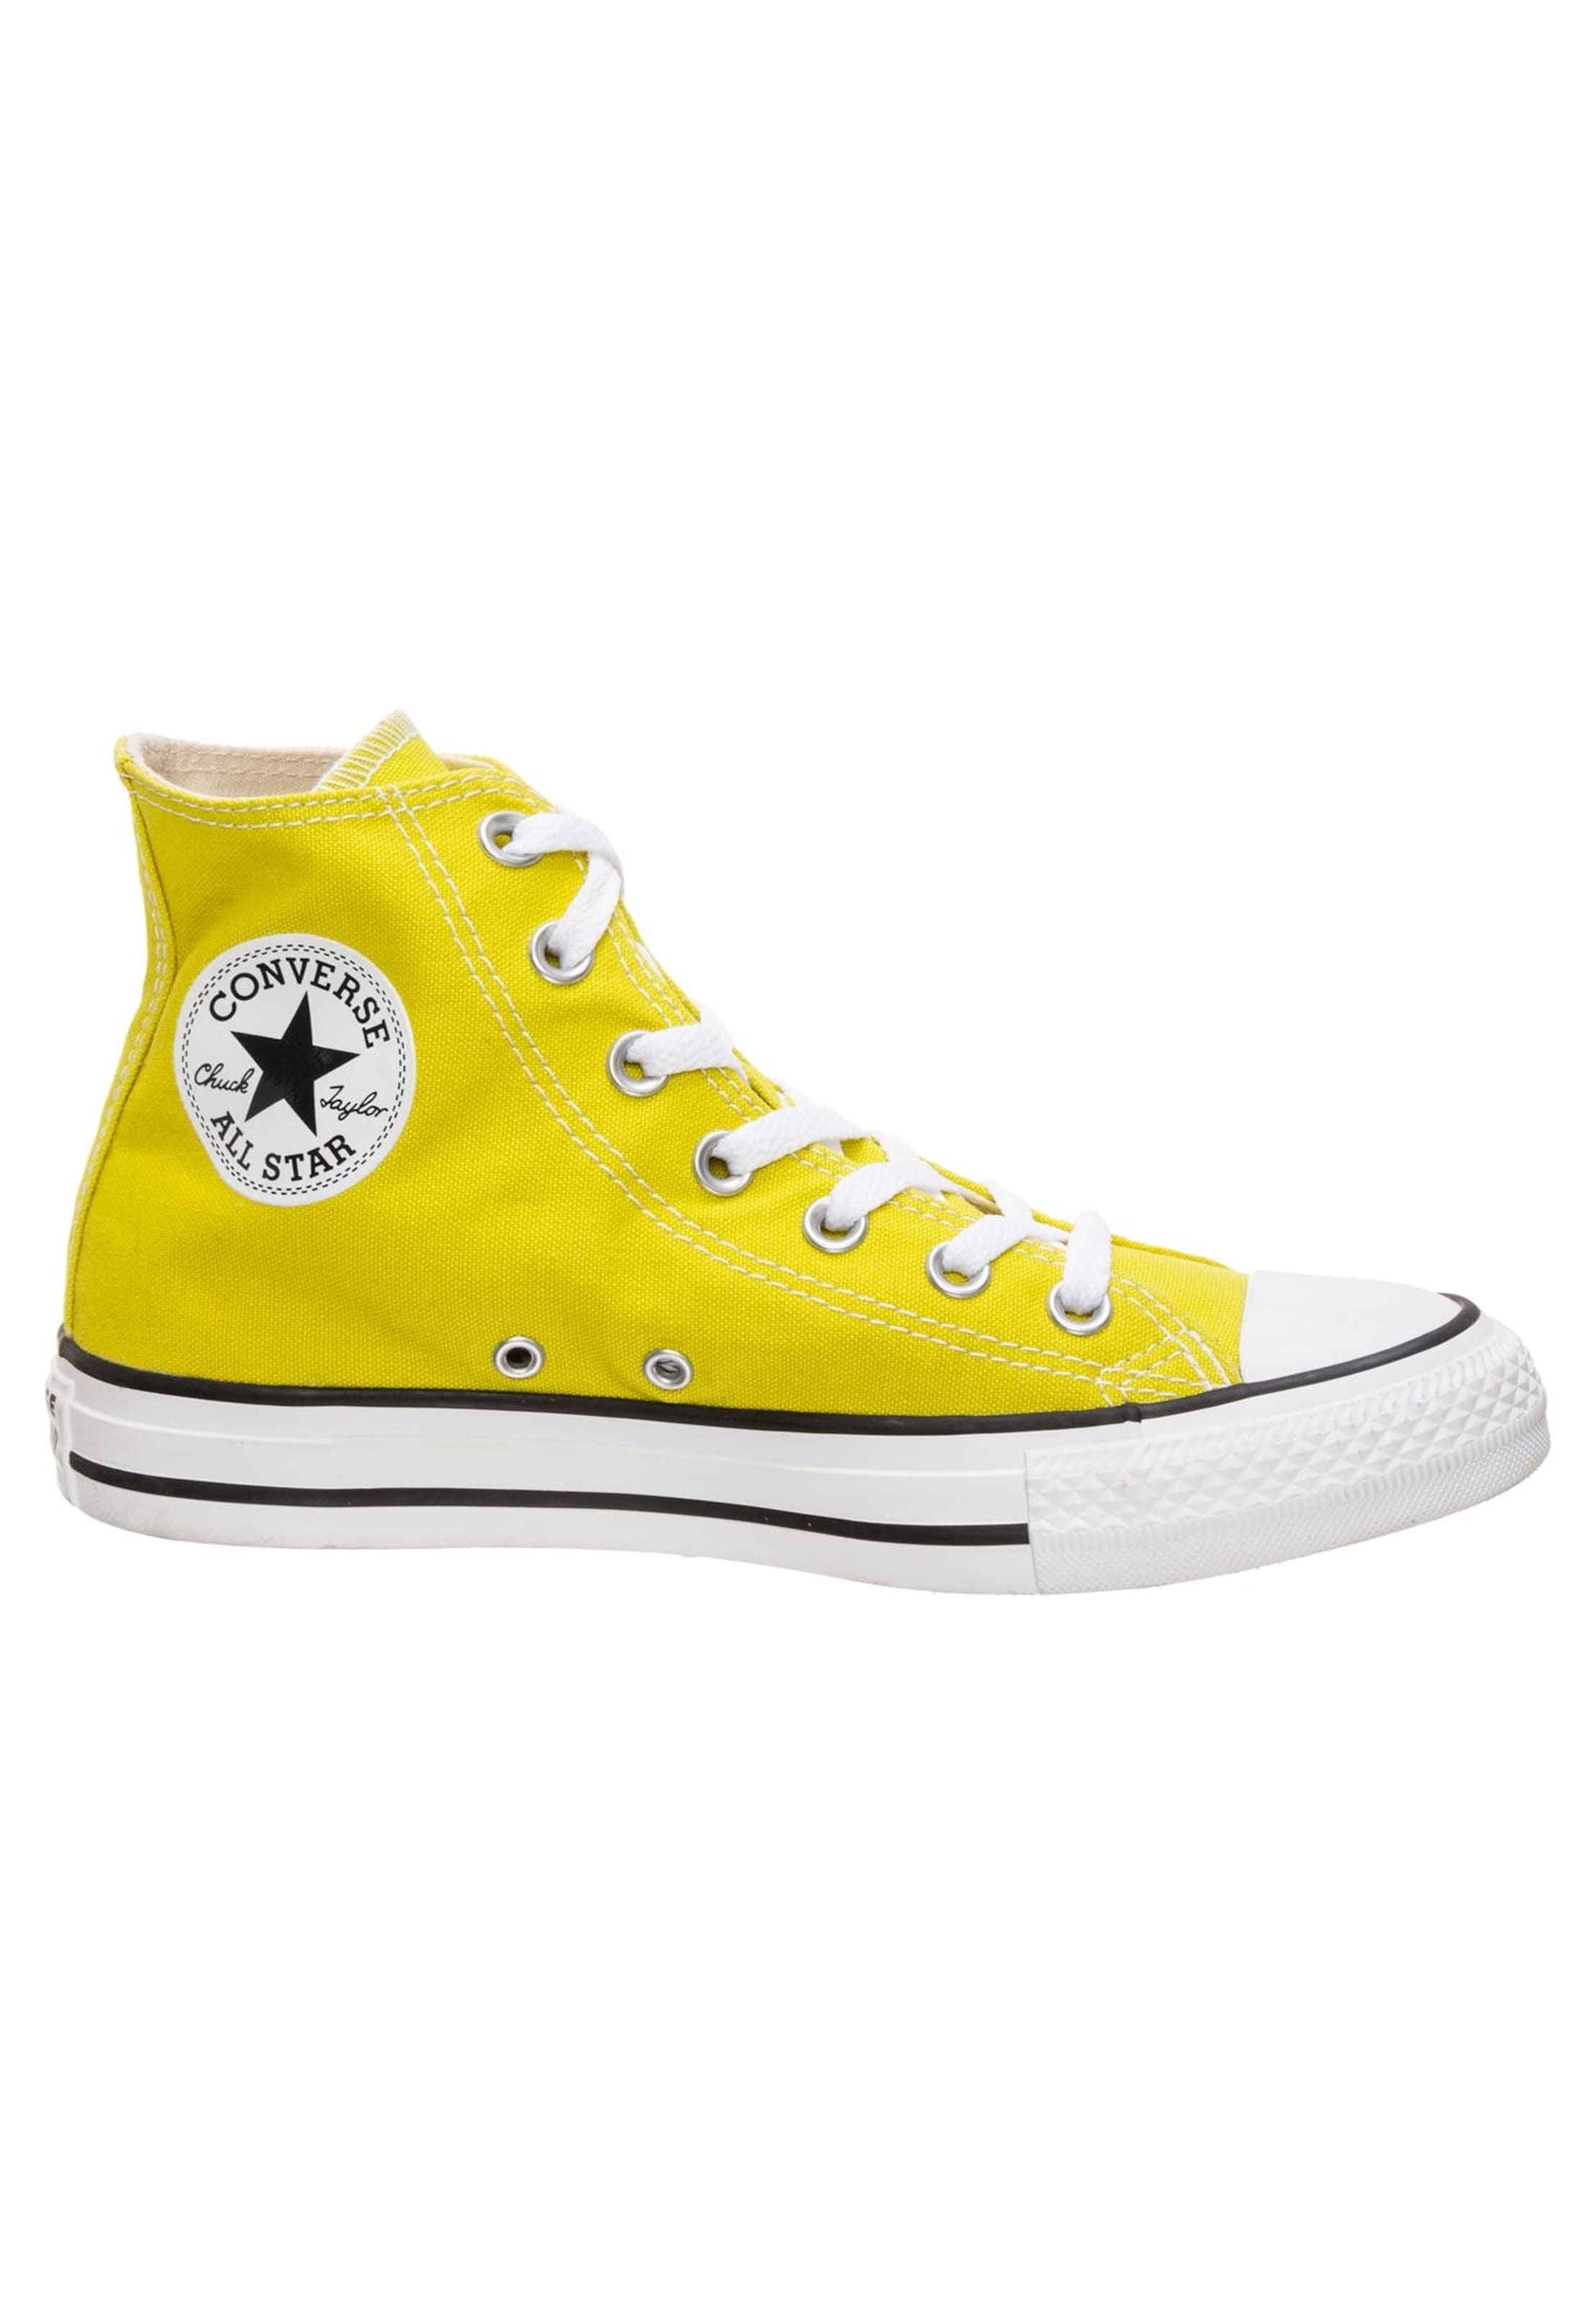 All Star' Sneaker GelbWeiß Taylor Converse 'chuck In edxBorCW